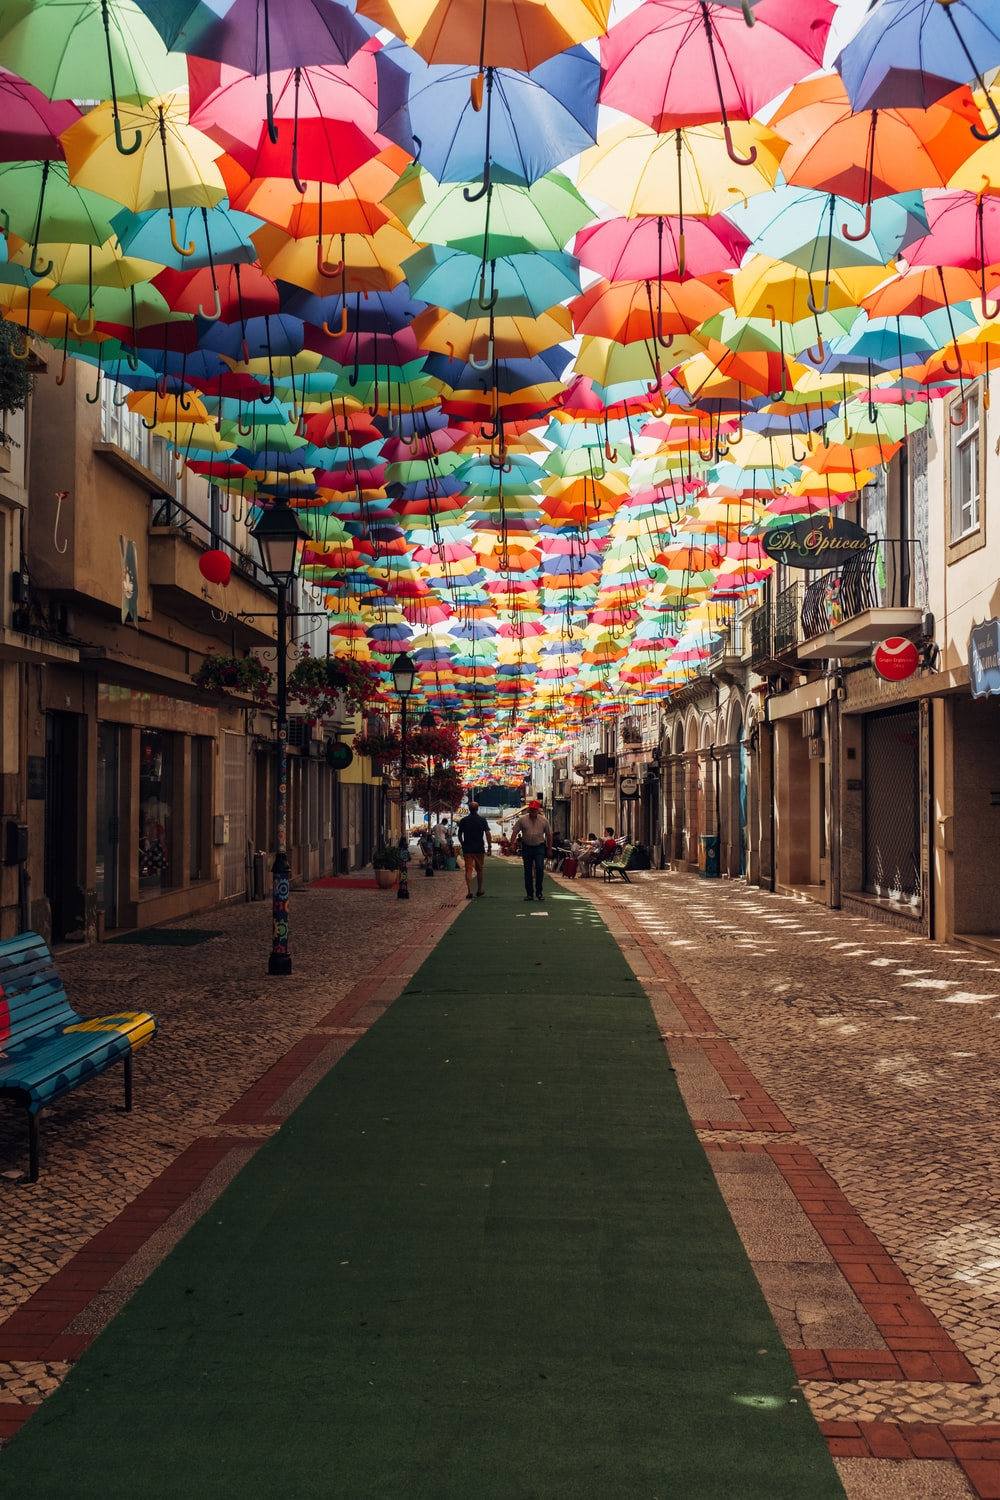 assorted-color umbrella covering alley during daytime